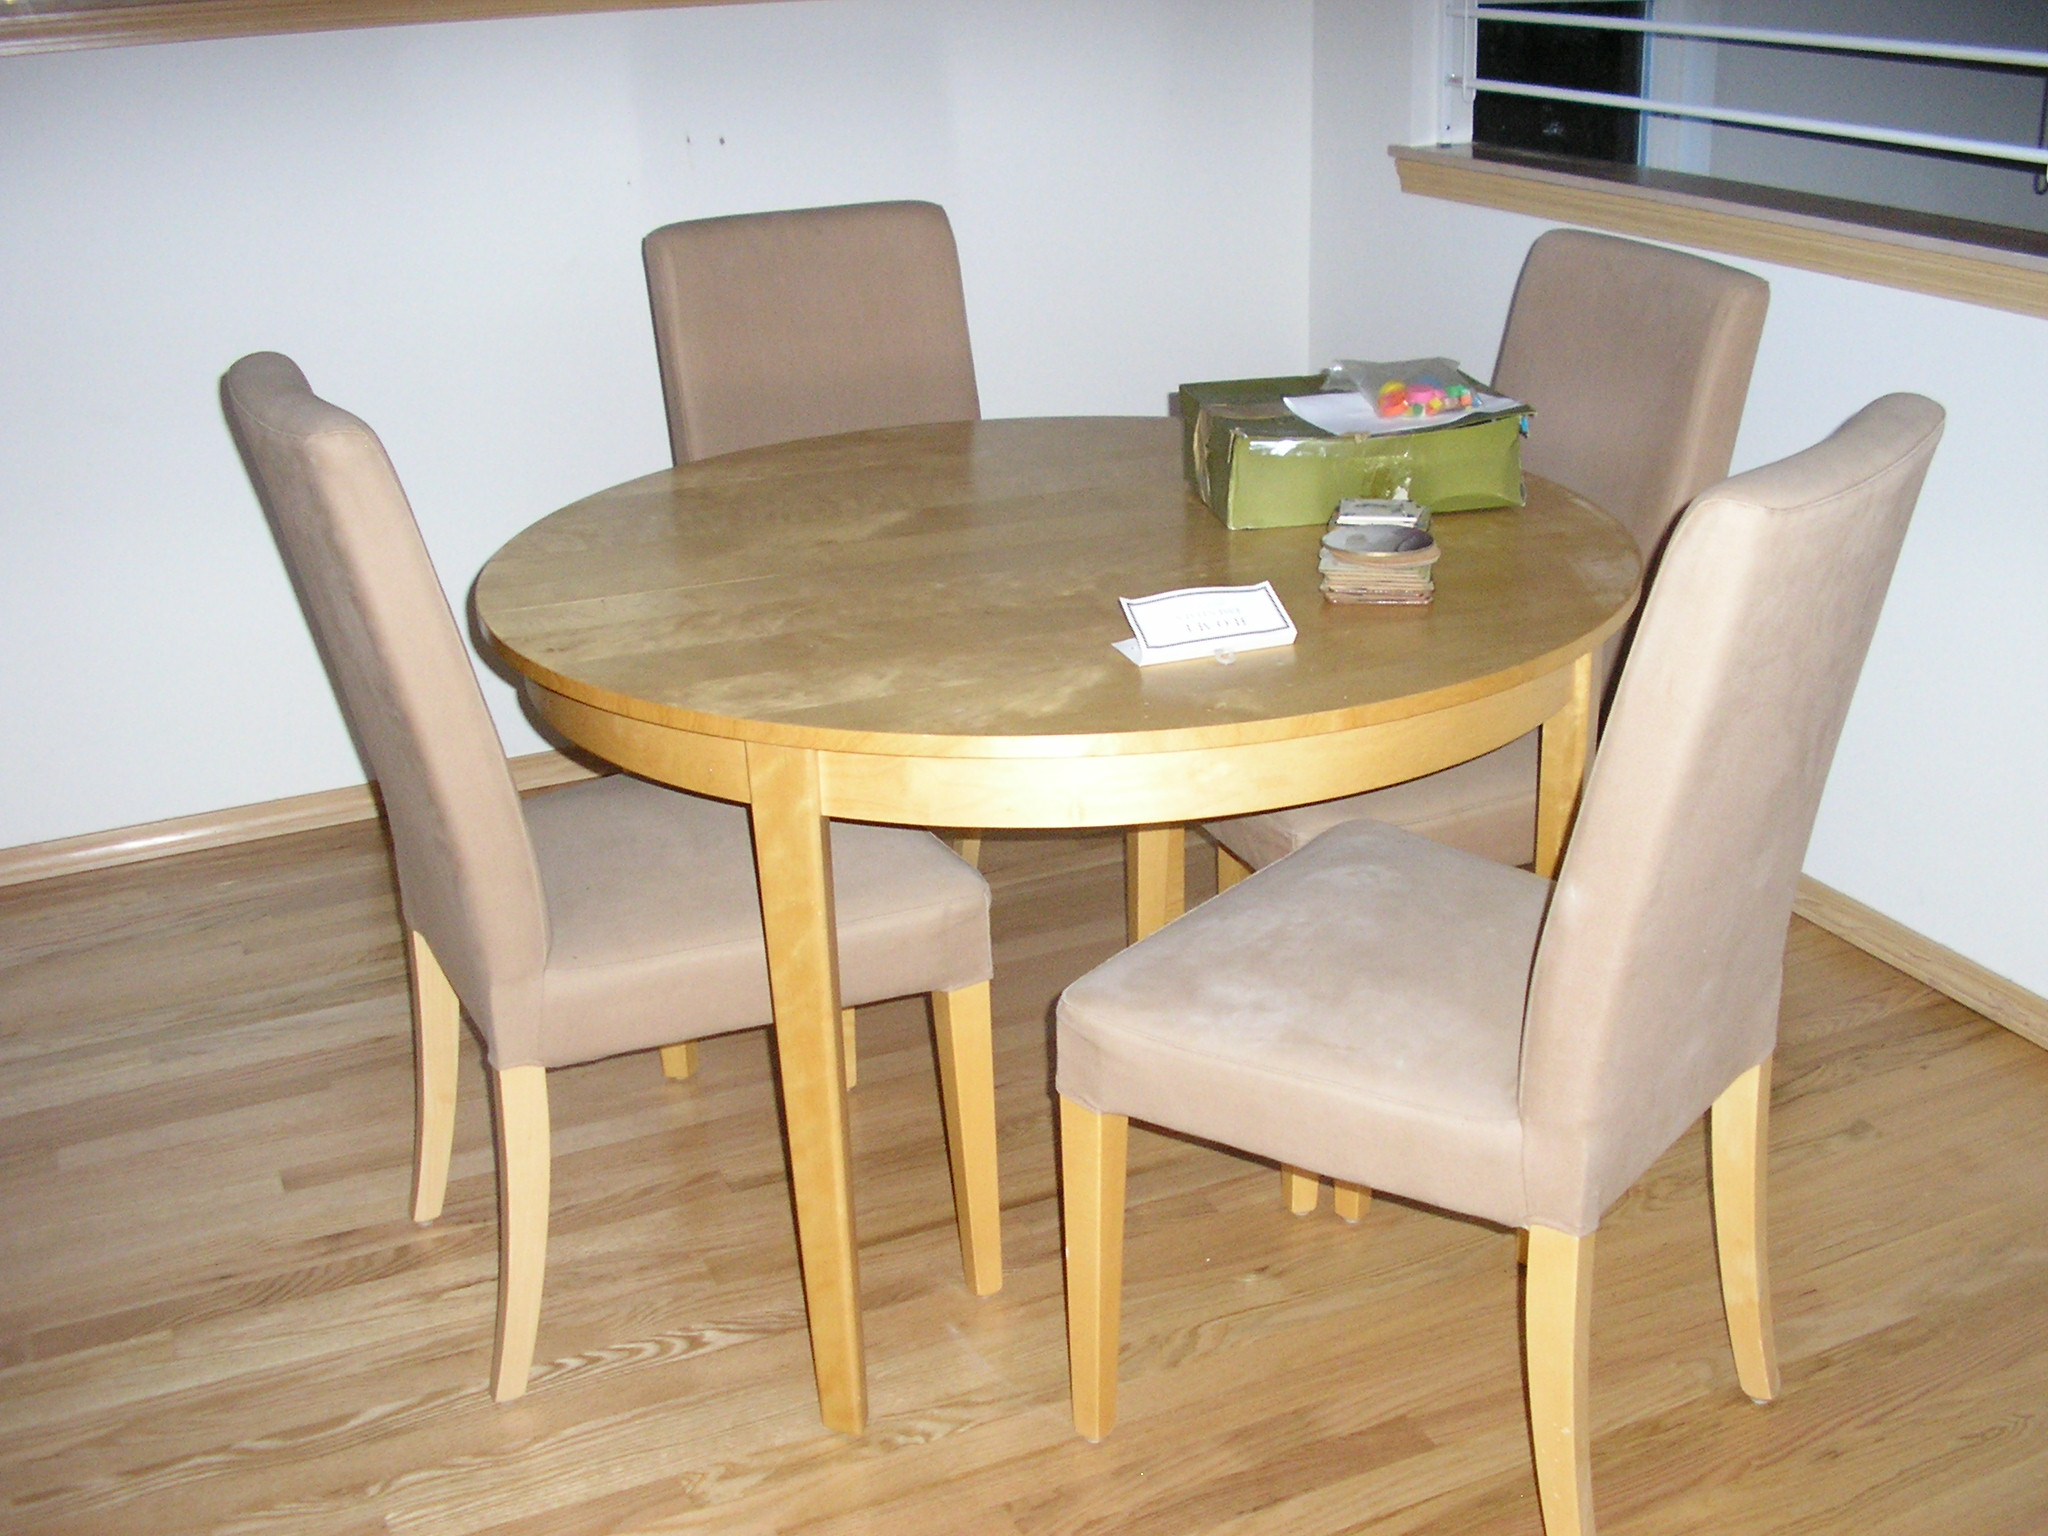 Round kitchen table and chairs set kitchen ideas for Round kitchen table ideas